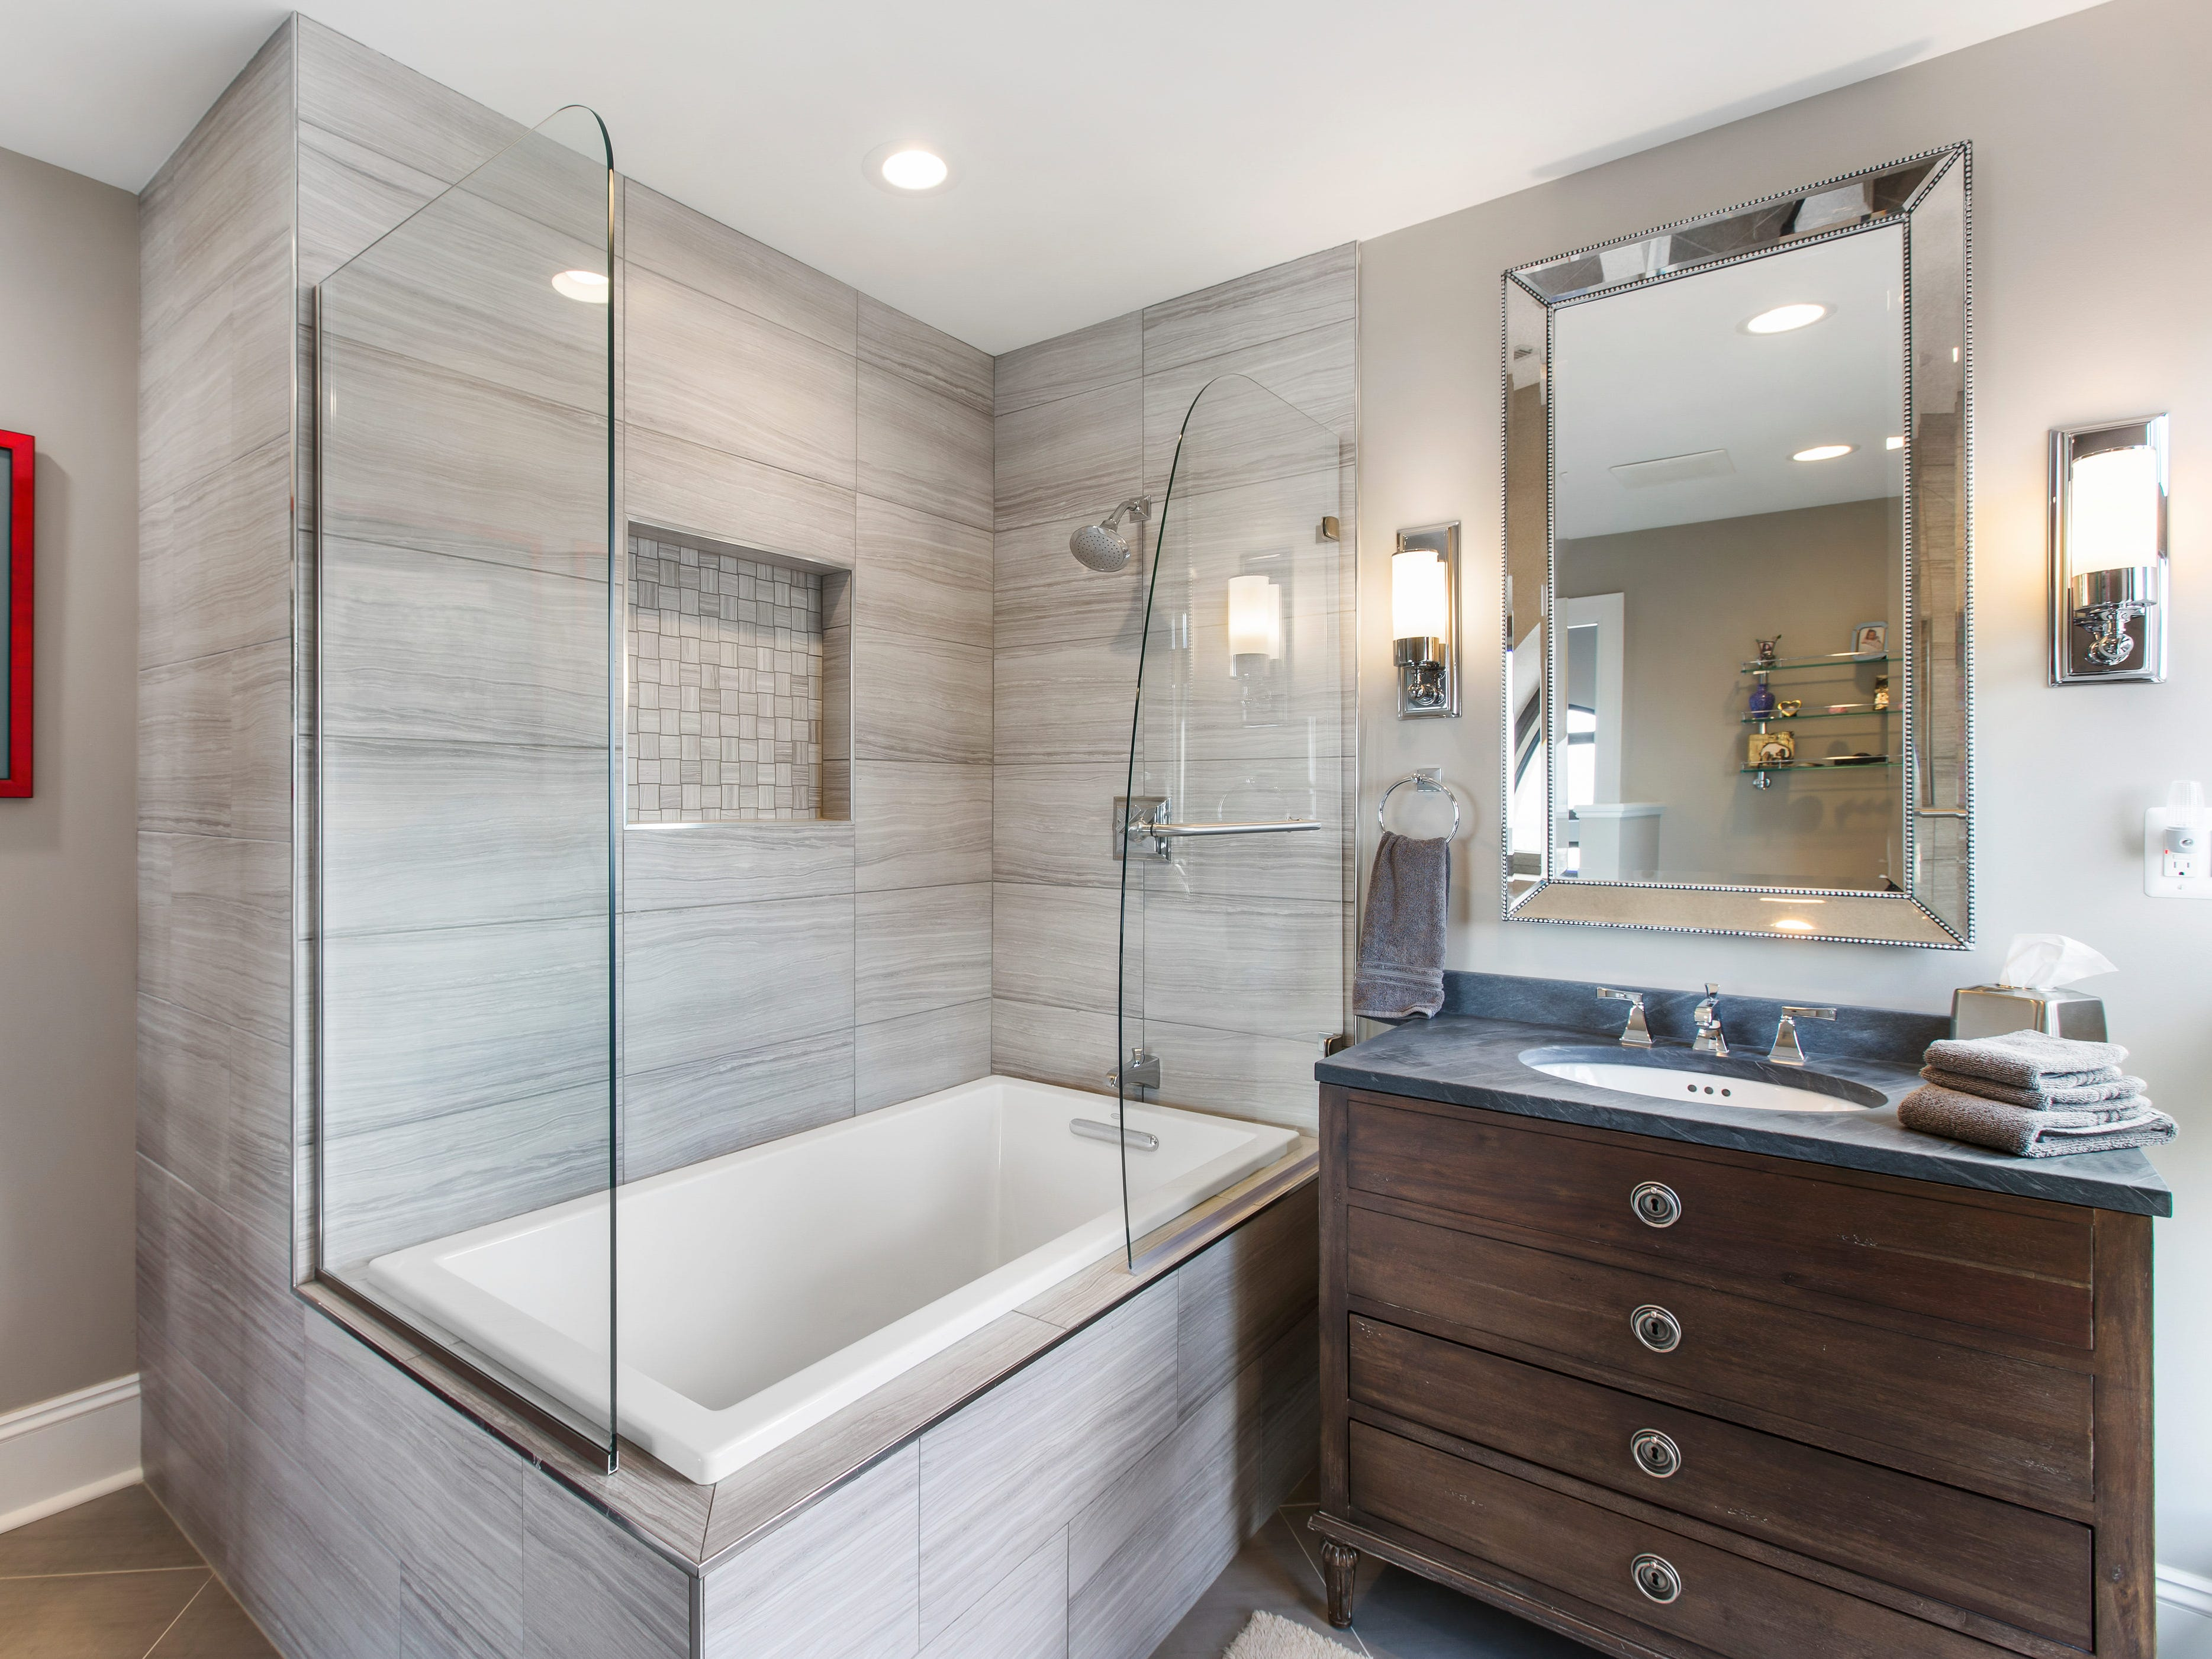 This is a bathtub and shower.